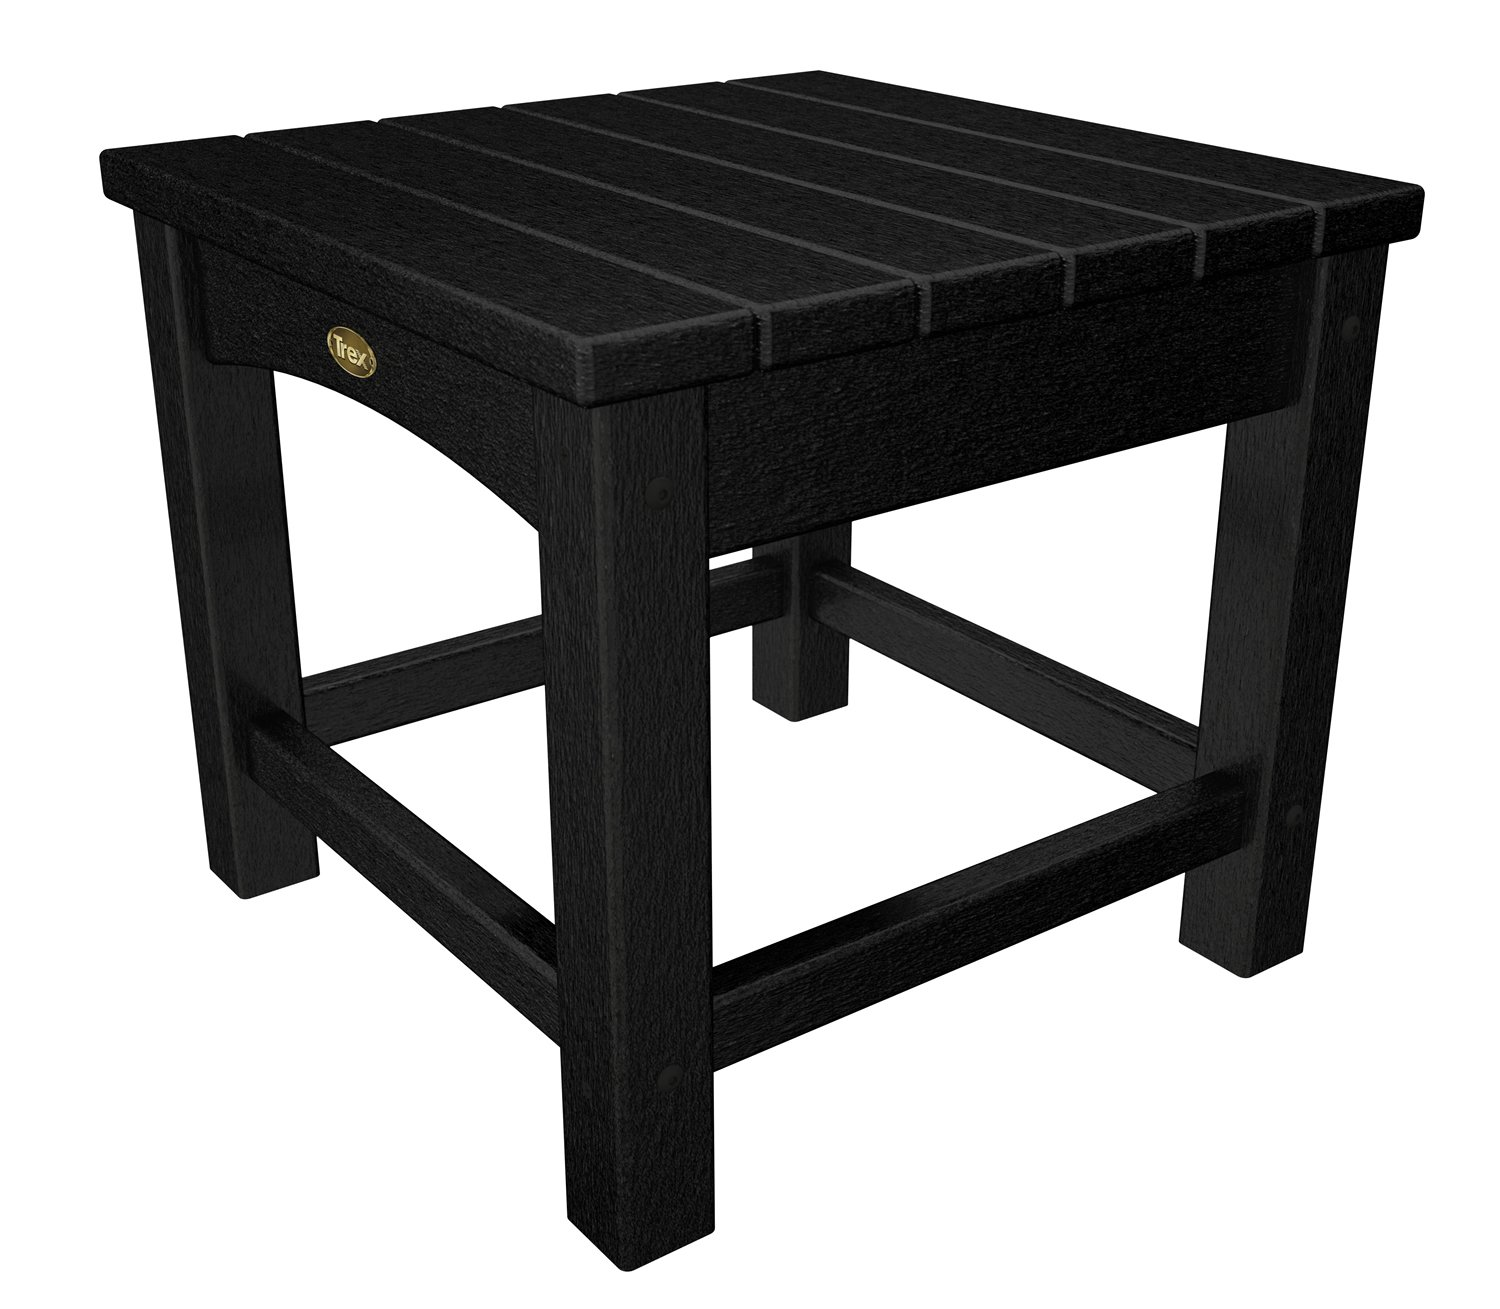 Trex Outdoor Furniture Rockport Club 18-Inch Side Table, Charcoal Black